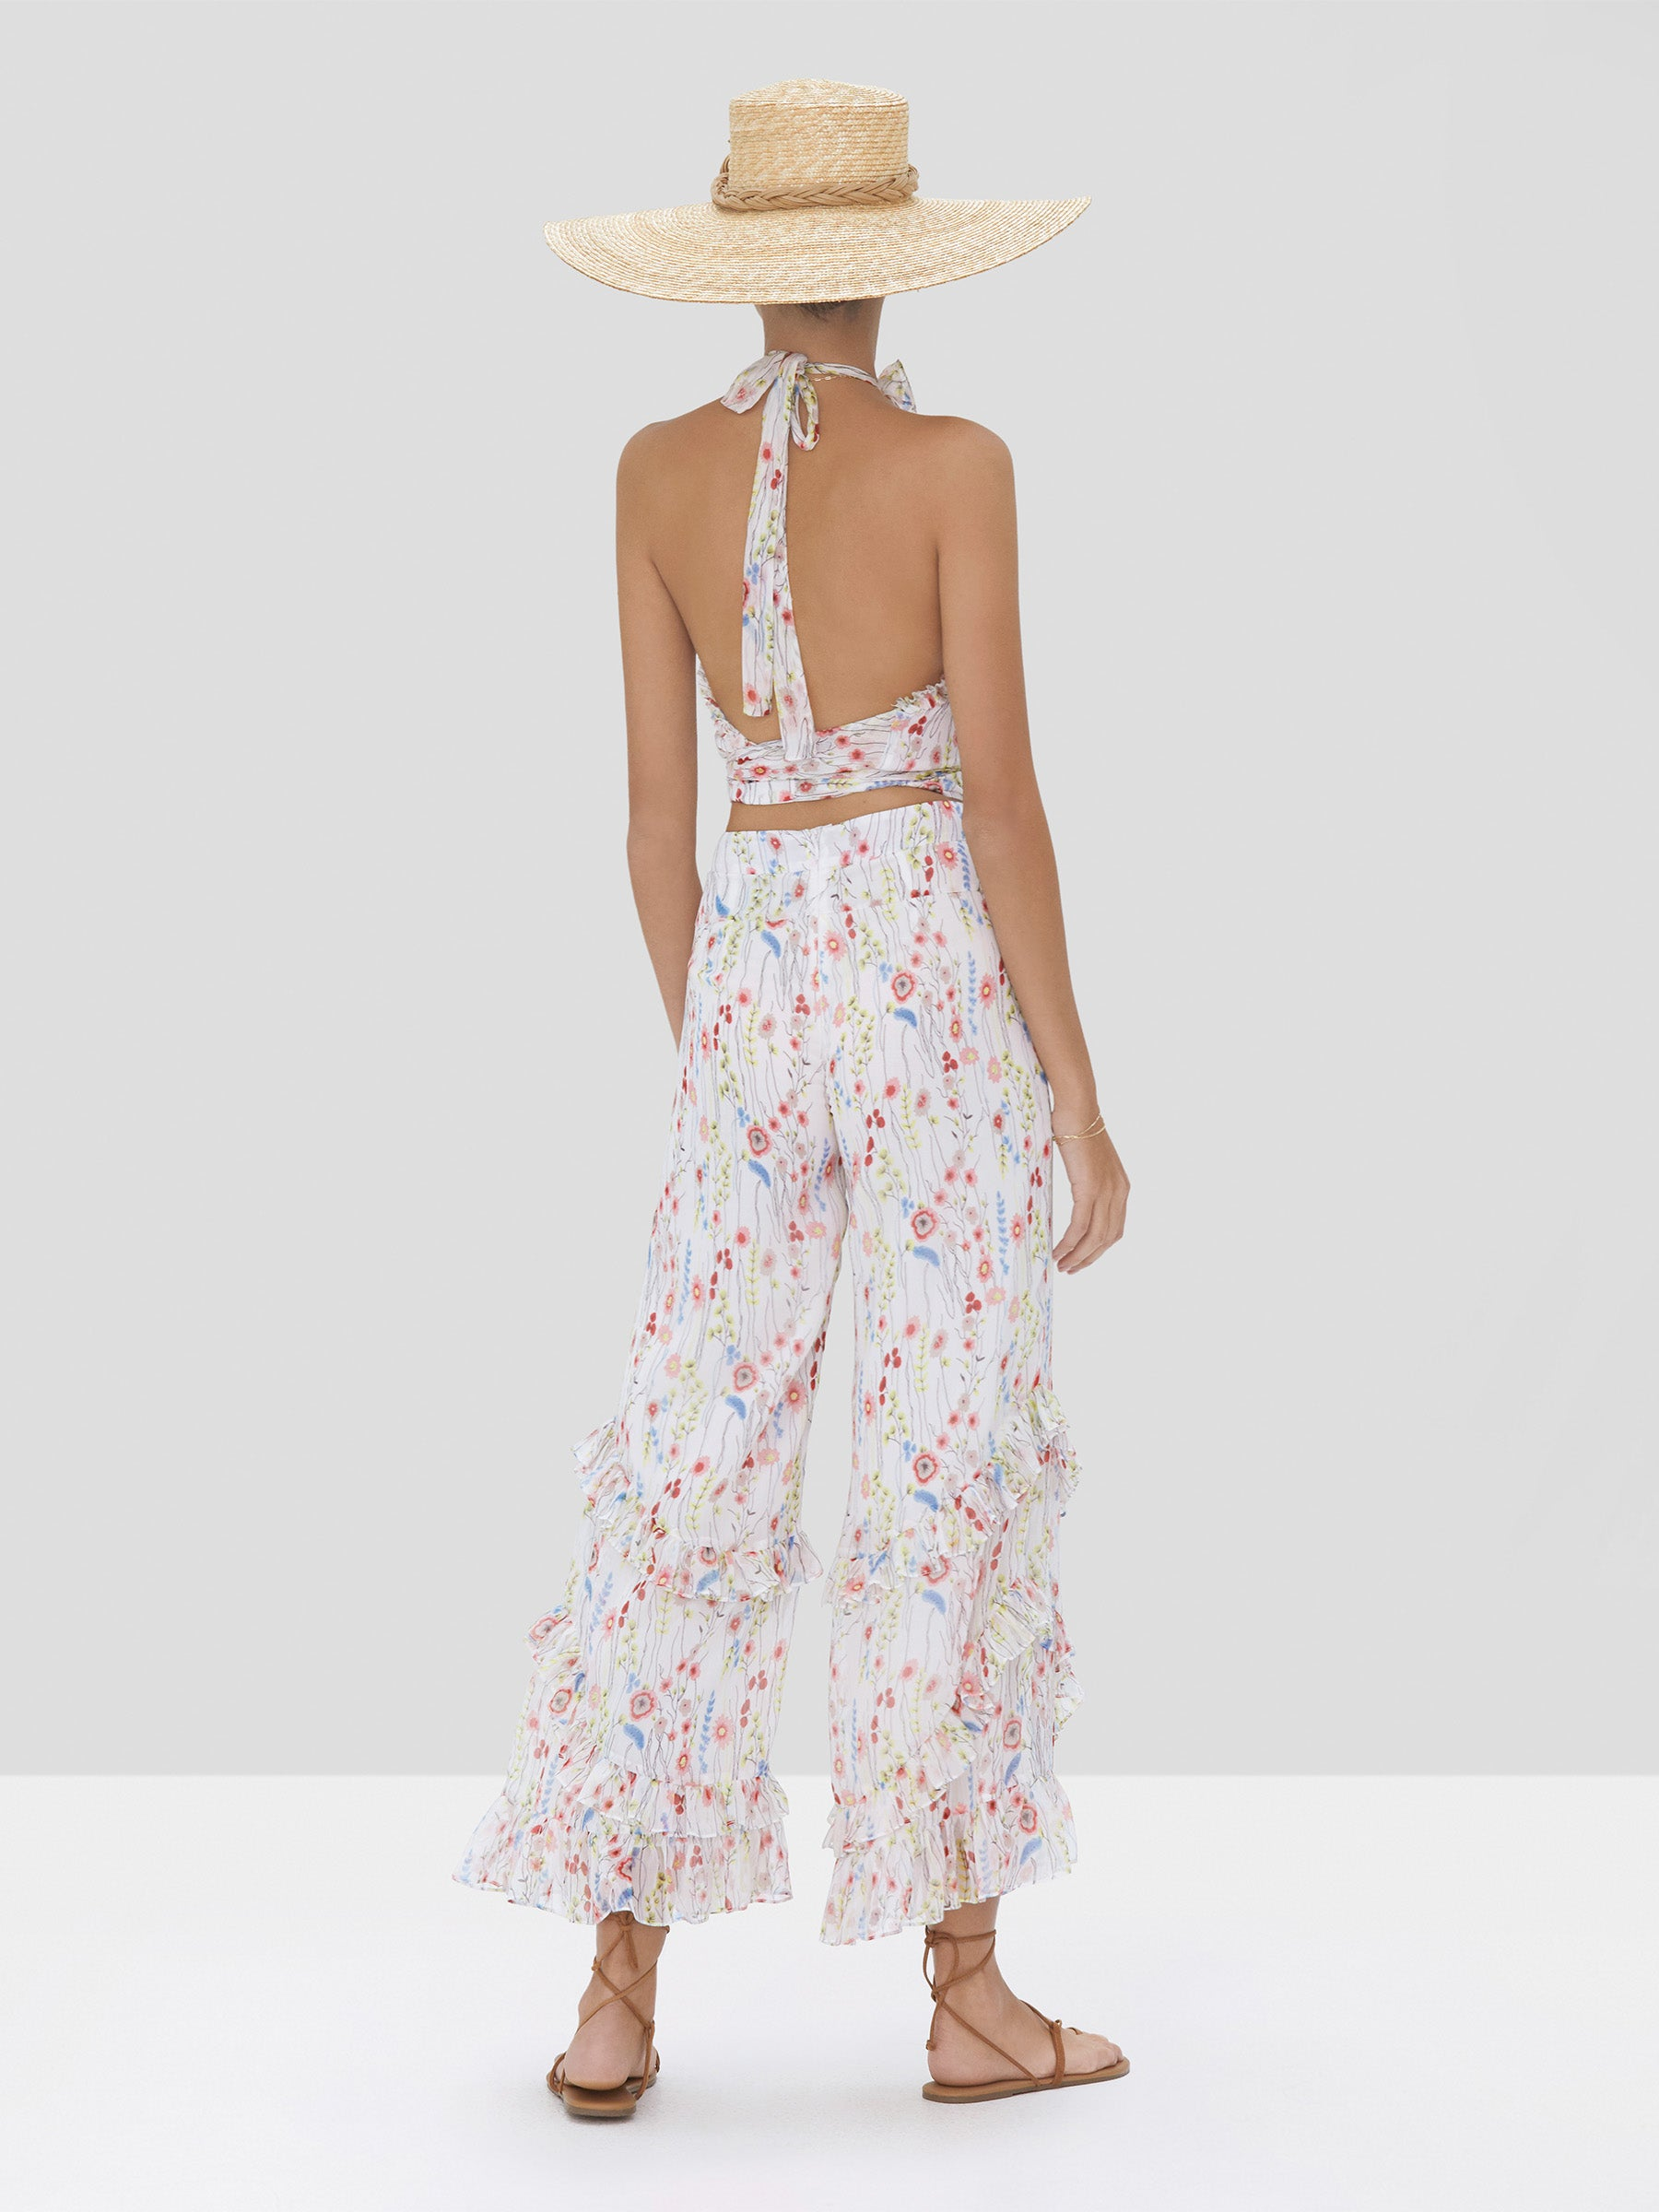 Alexis Balbina Crop Top and Faizel Pant in White Bouquet from Spring Summer 2020 Collection - Rear View